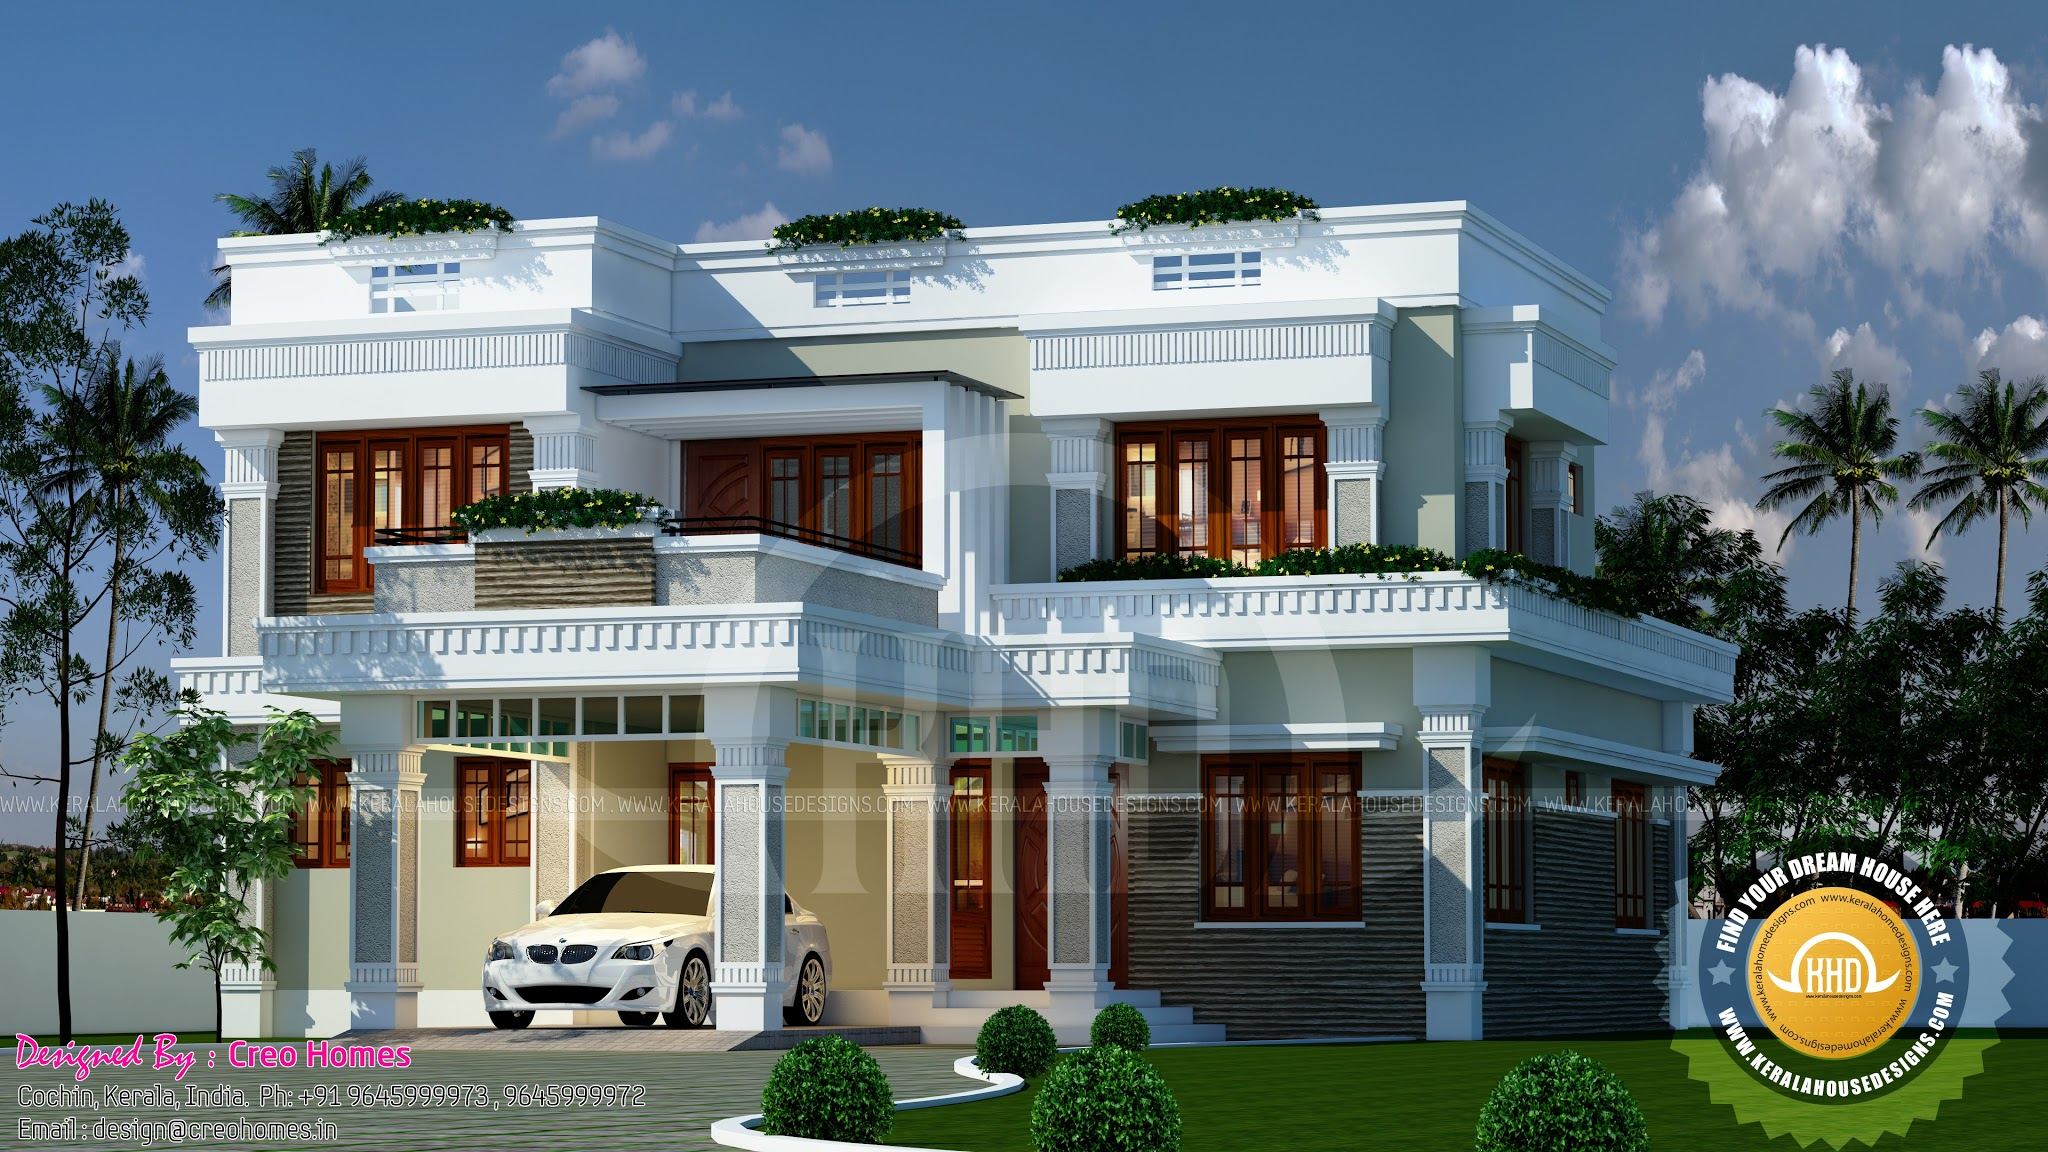 Decorative flat roof home plan kerala home design and for House design outside view